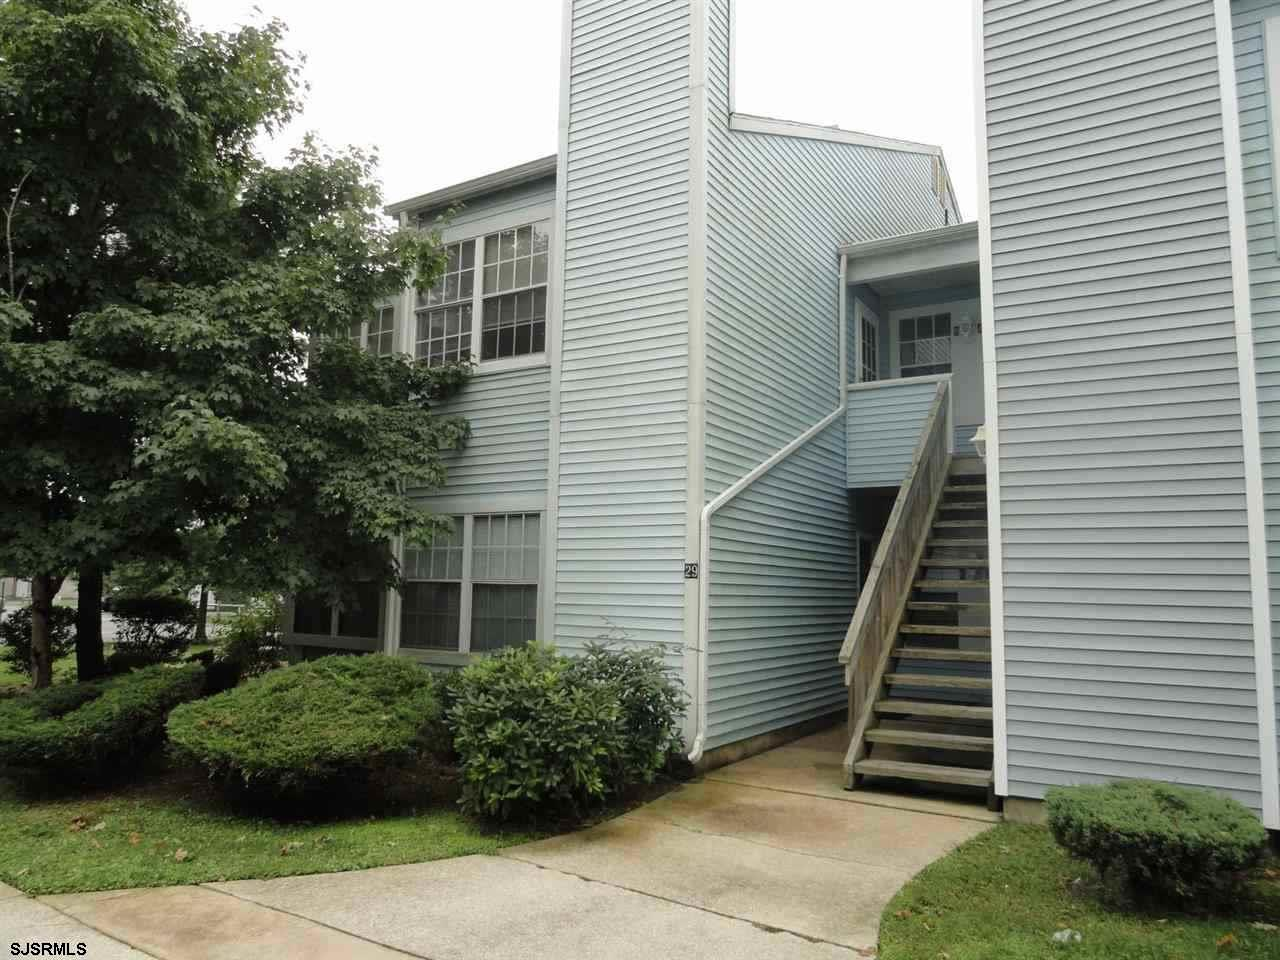 Beautiful 2nd fl condo with cathedral ceilings. If you like natural sunlight then this is the home for you. Home features Newer gas heat. central air. Bedroom w/walk in closet. Kitchen with room for a table. This unit is larger than most.  Washer and dryer included in the home.  This is an End unit. Conveniently located across from the Smithville Village. Close to shopping and transportation,min to casinos and beaches. Perfect for a vacation get away. Enjoy all the Smithville amenities, Gym,pools,clubhouse,tennis, walking/bike paths Like a vacation  everyday. NTN credit check  and security deposit required. Minimum  2 yr lease required  All parties must sign the NJAR virus waiver attached in associated docs before viewing in person